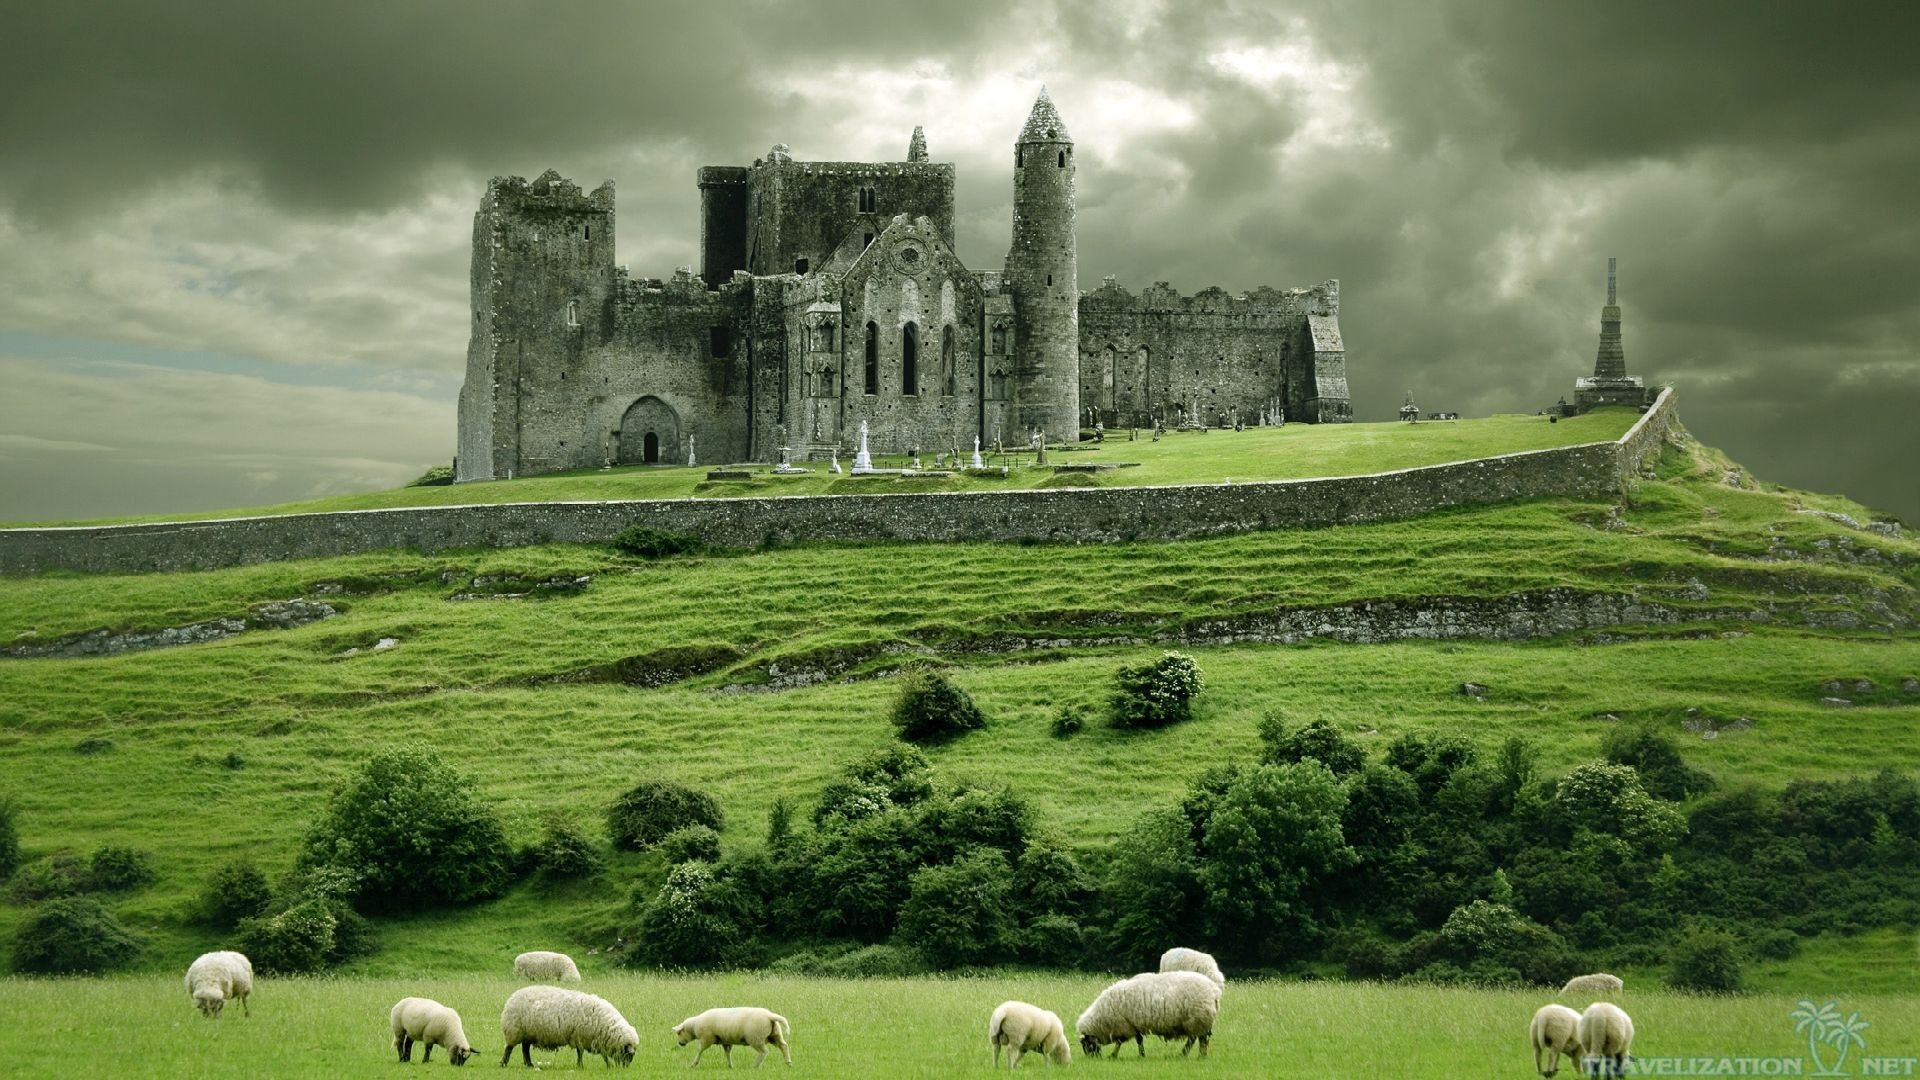 Ireland Scenery Wallpapers   Top Ireland Scenery Backgrounds 1920x1080